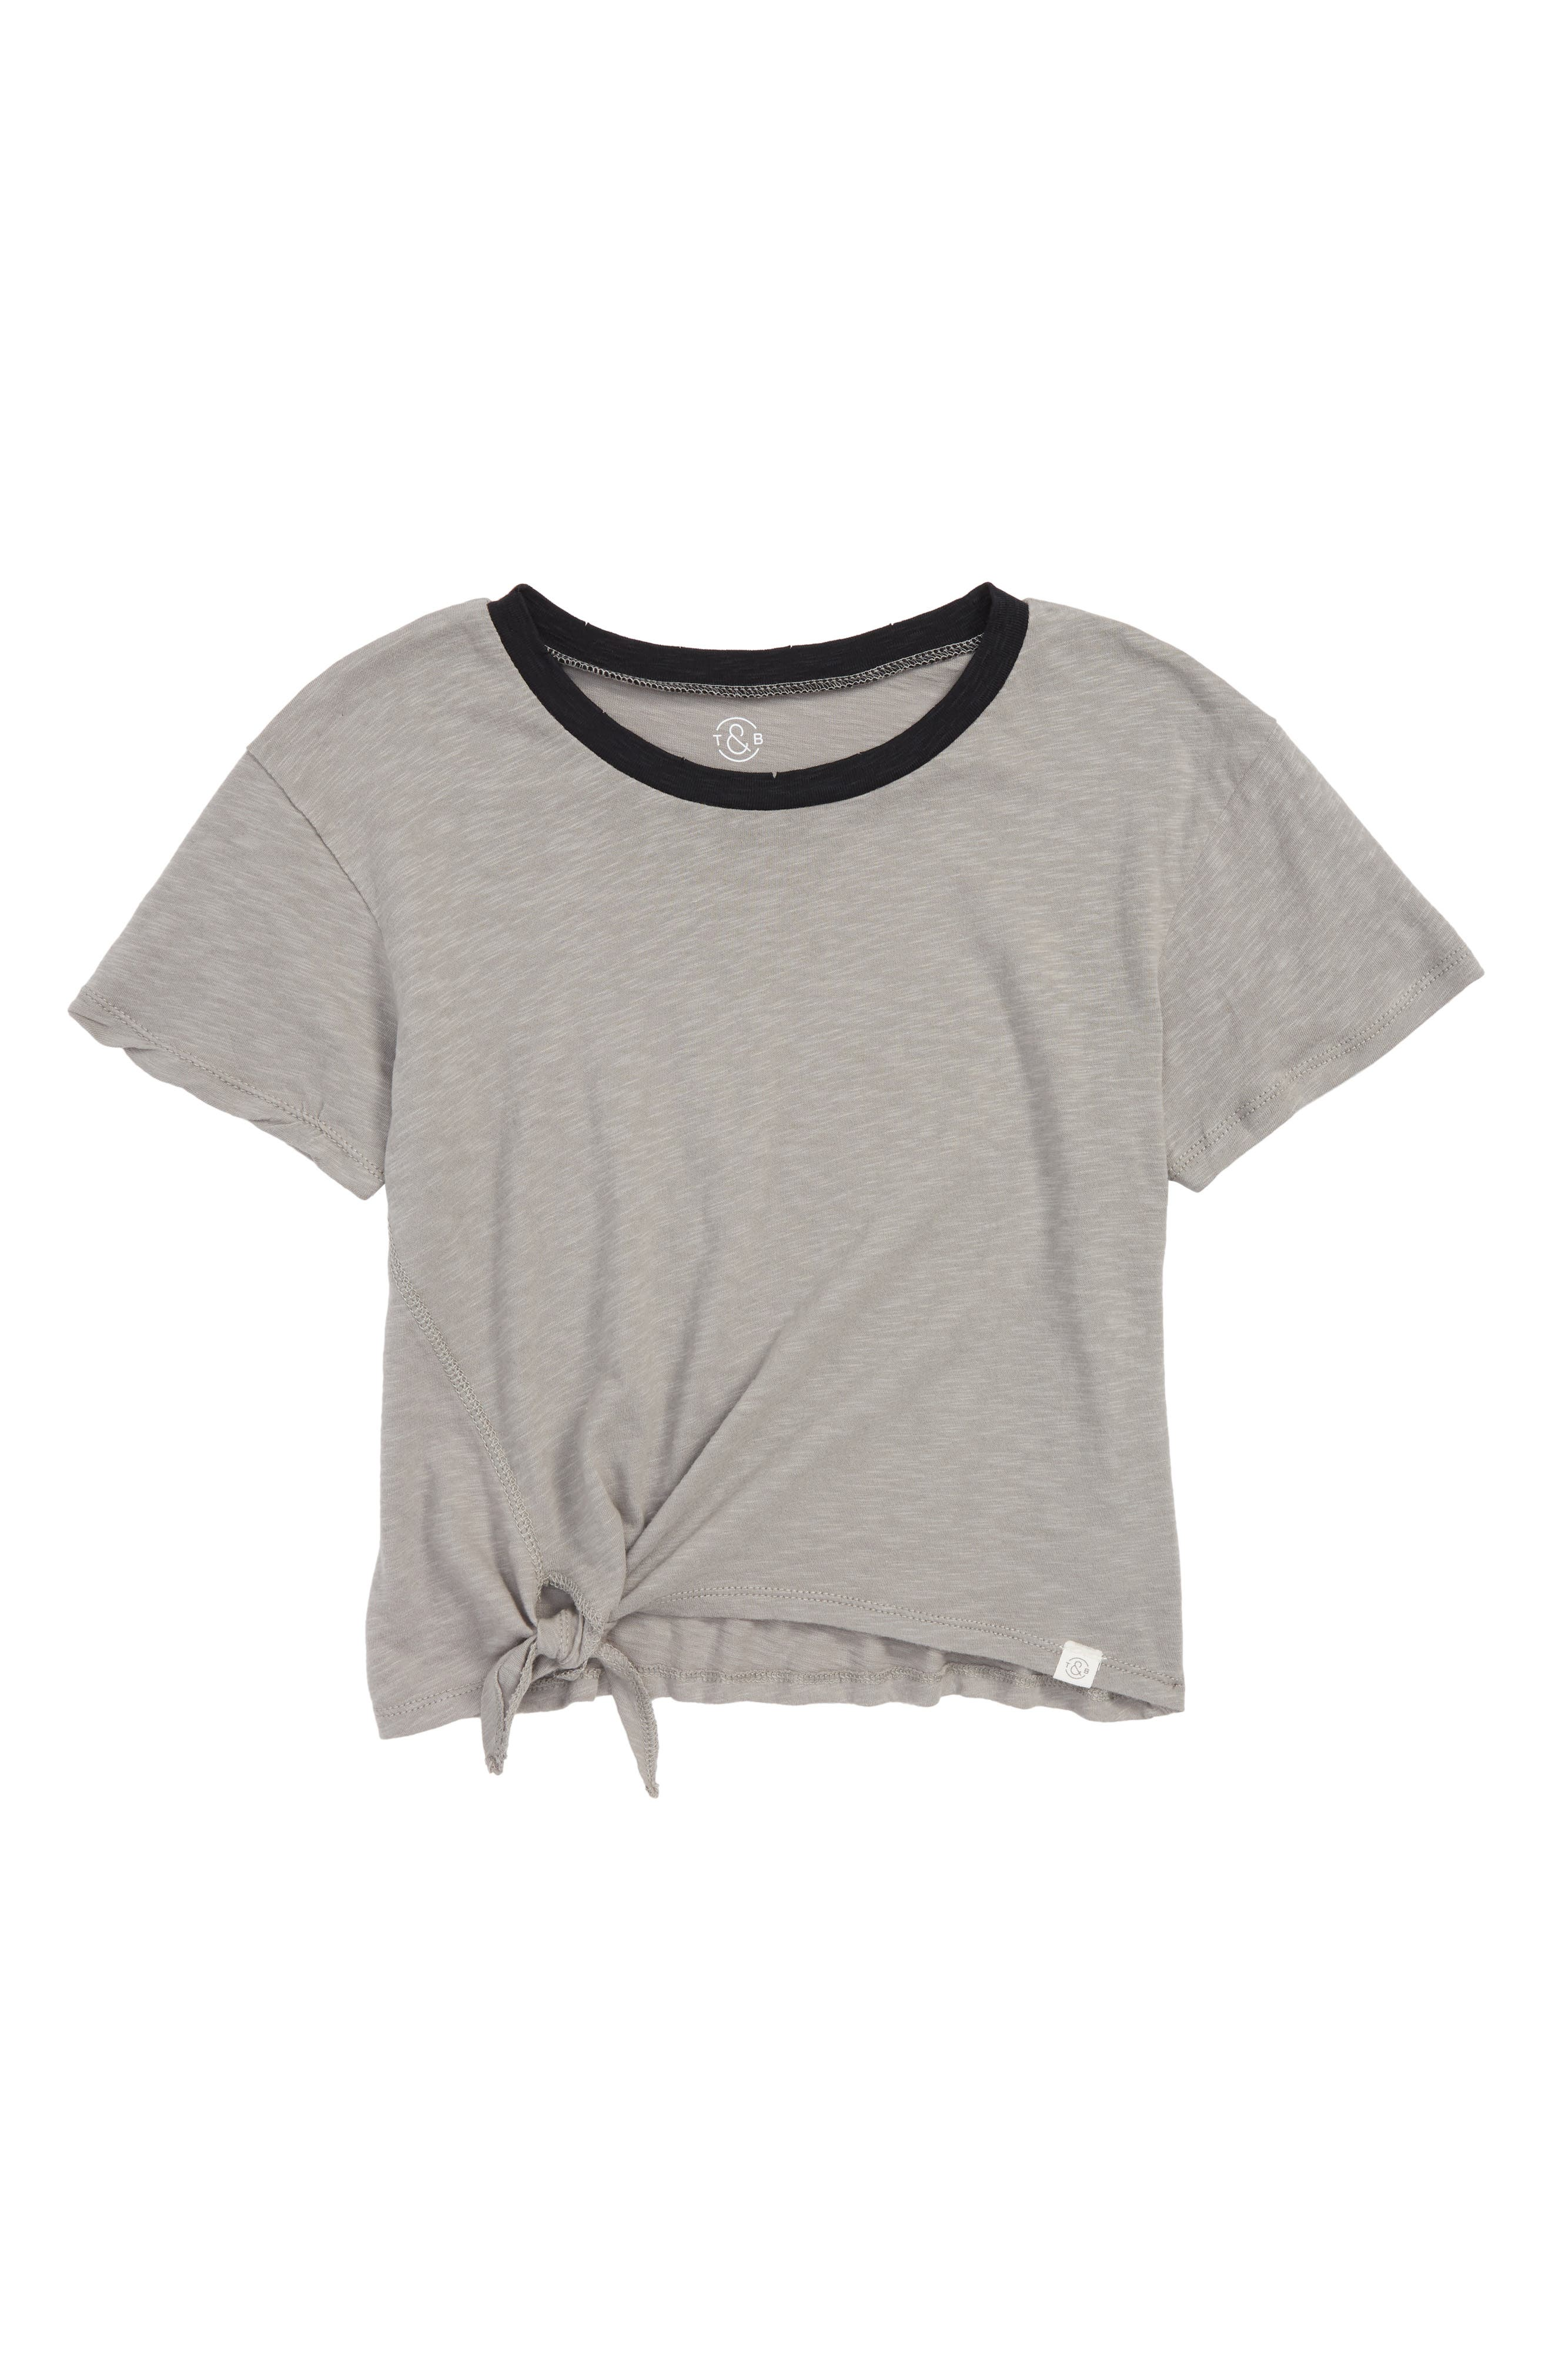 Knotted Ringer Tee,                         Main,                         color, Grey Cloudburst